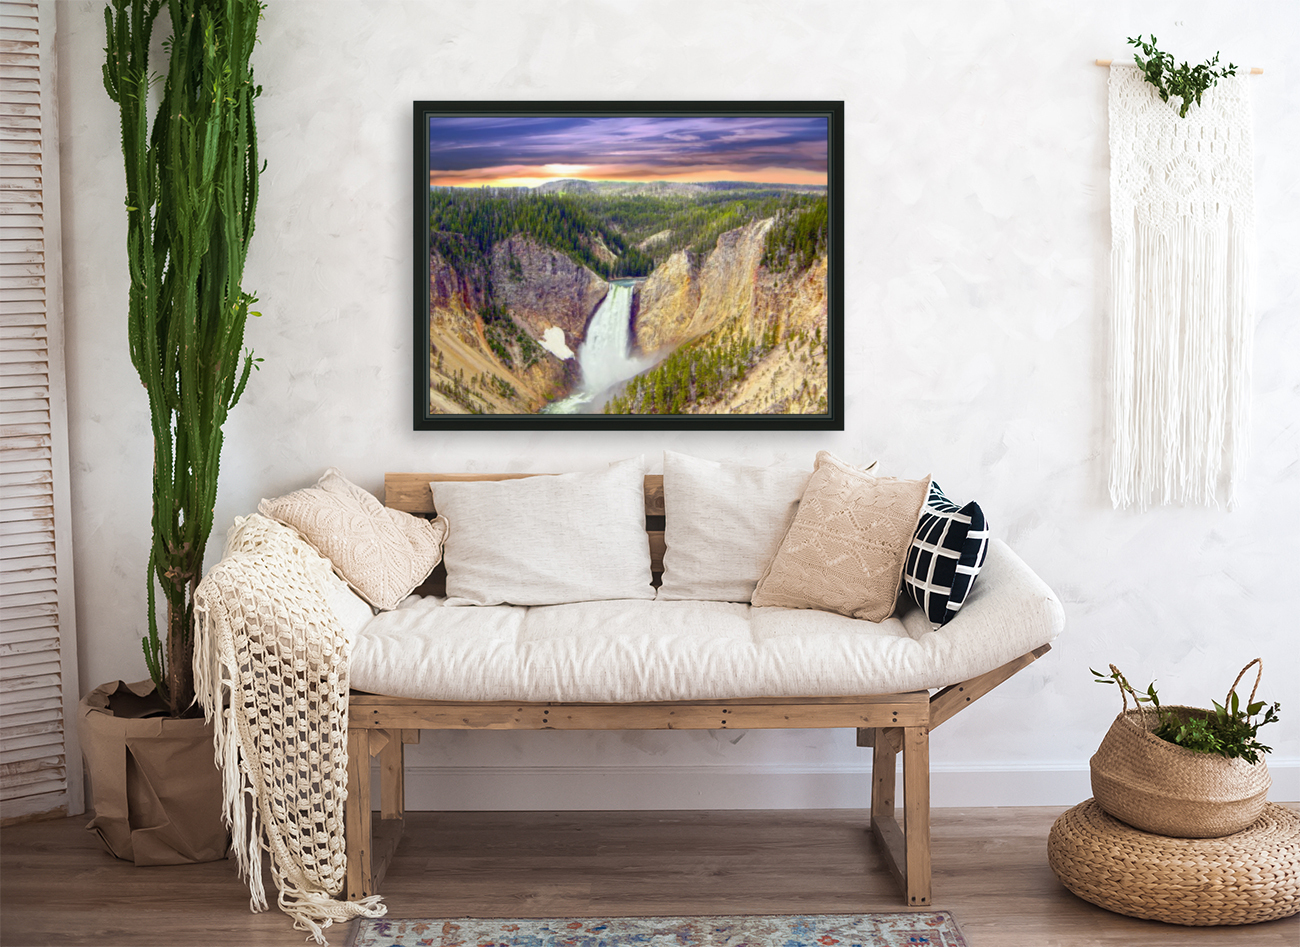 Grand Canyon of Yellowstone - The Falls in the Waning Light of Day - Yellowstone National Park at Sunset  Art